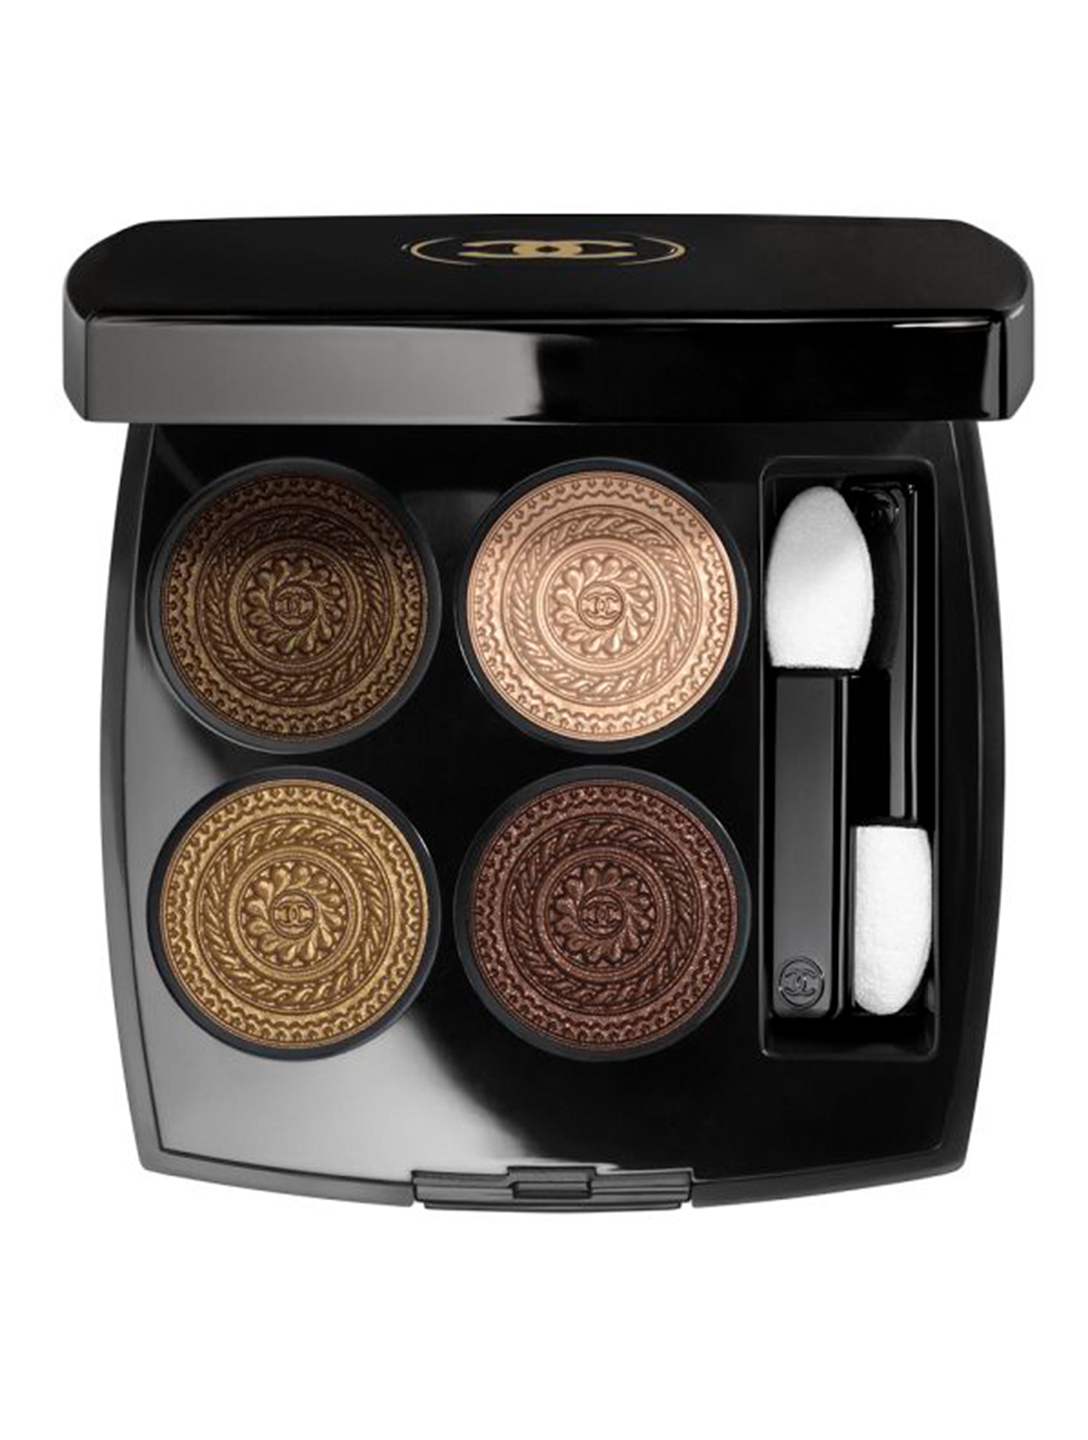 CHANEL Exclusive Creation - Limited Edition Quadra Eyeshadow CHANEL Multi